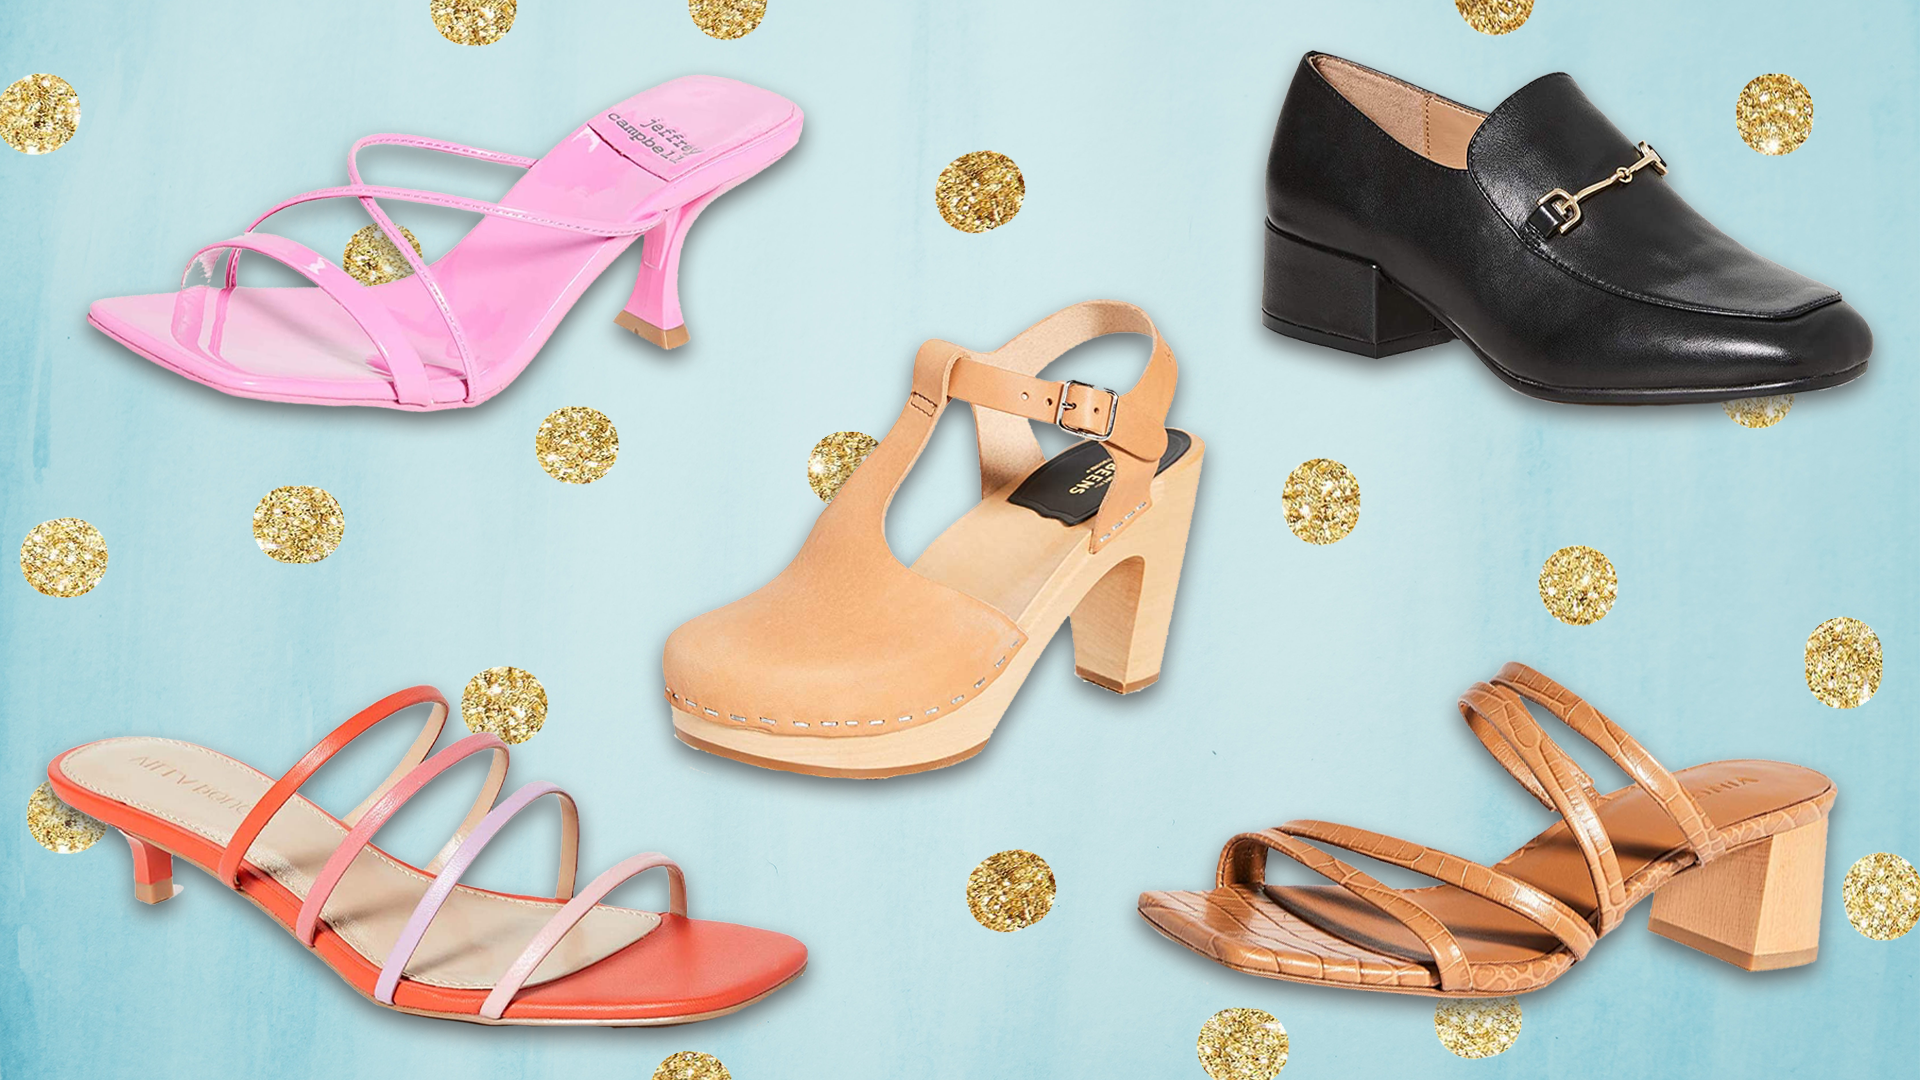 Summer 7 High Heels Trends: 7 Styles You Totally Need This